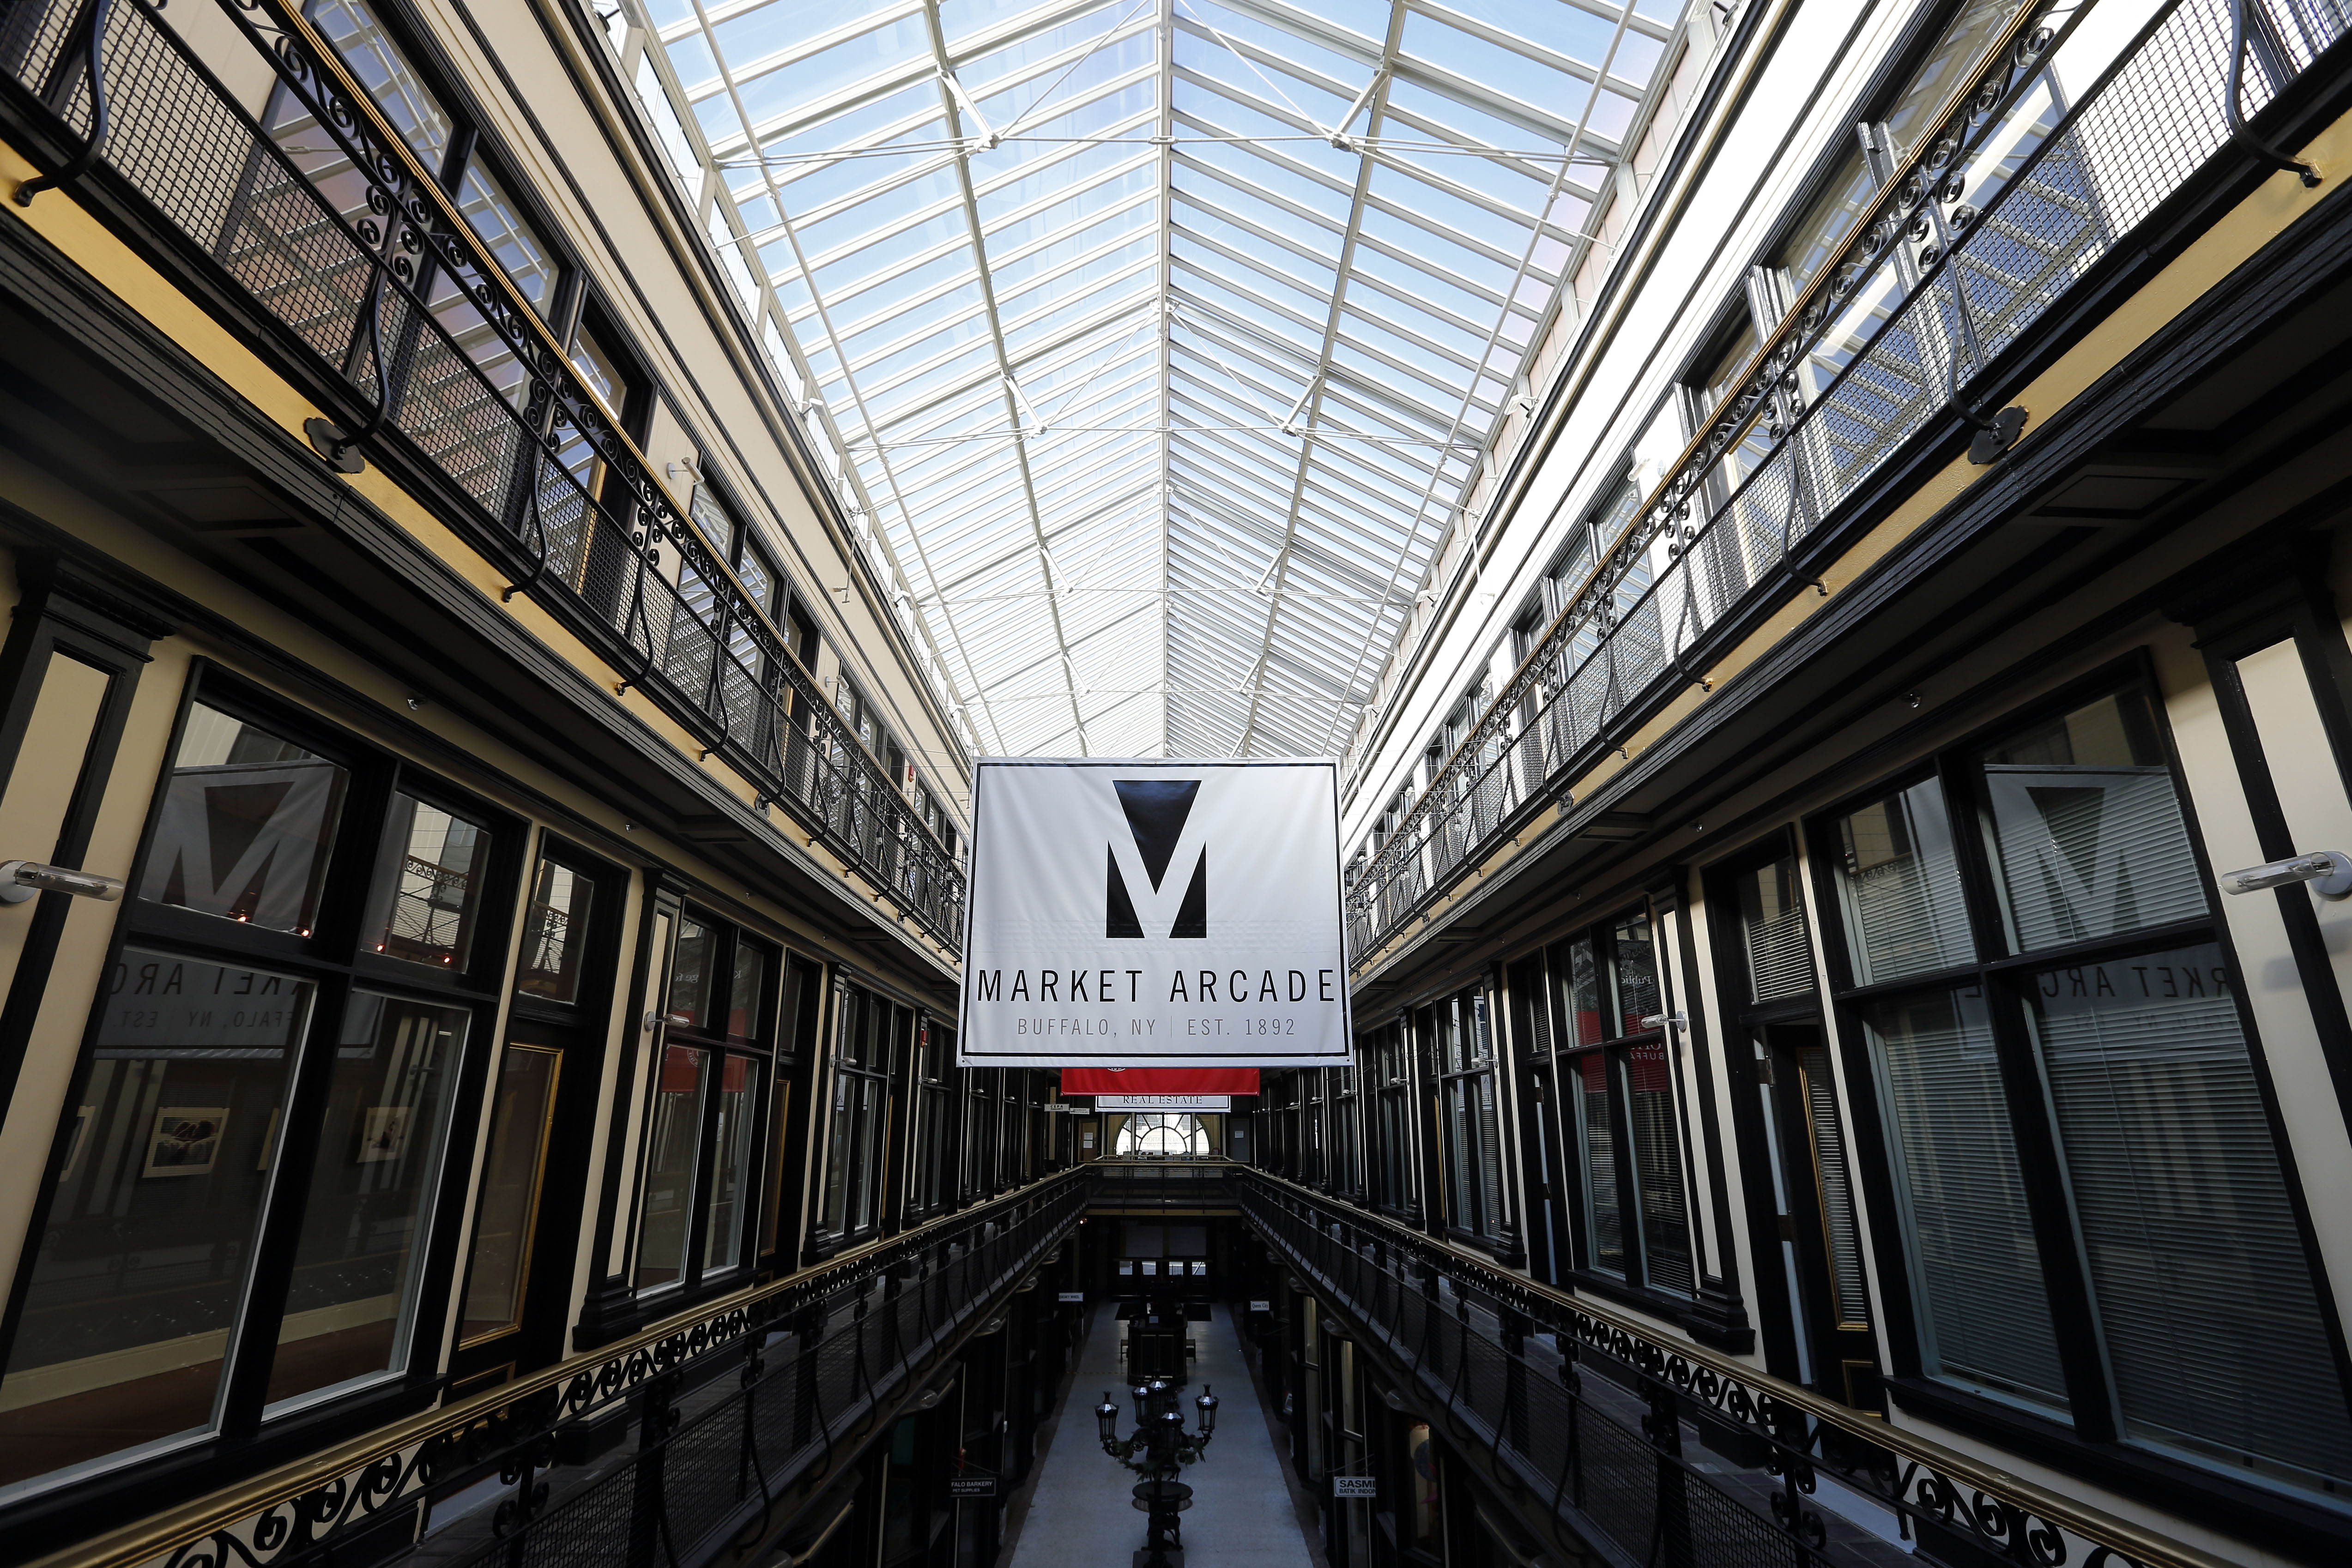 The Market Arcade has three levels of shops and offices topped by a skylight. (Mark Mulville/Buffalo News)